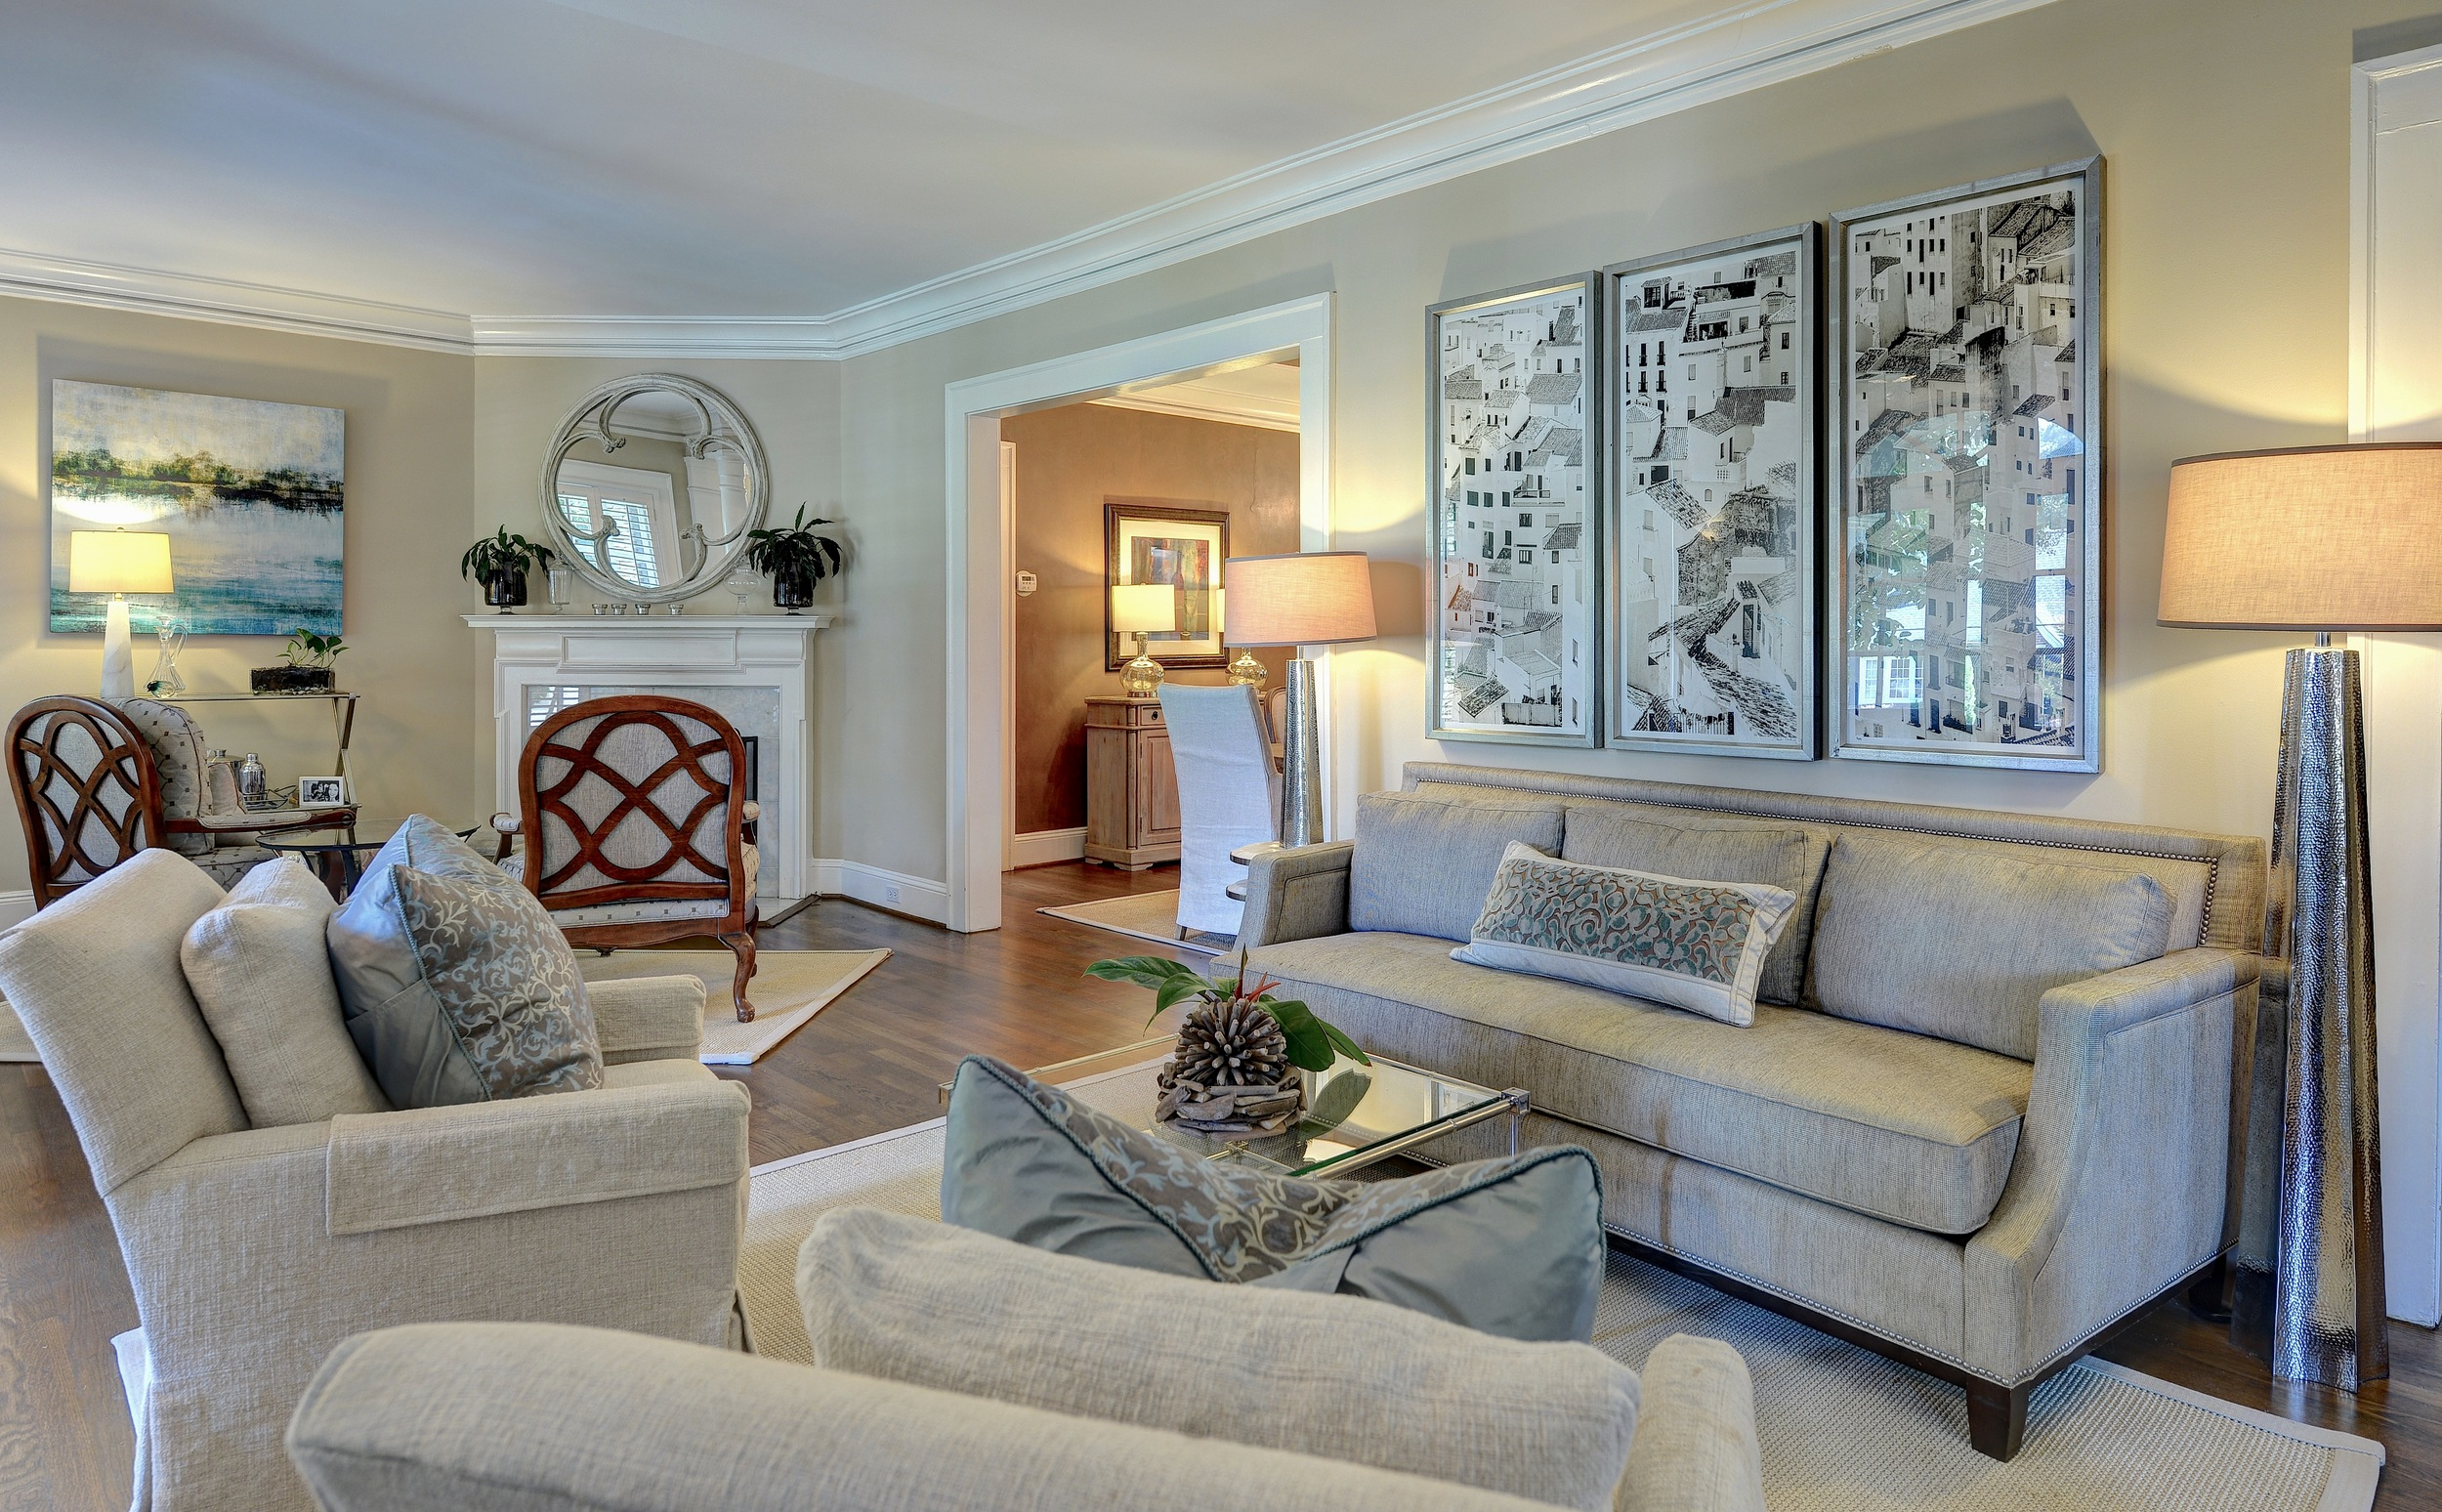 Simply Staged - Complete Guide to Staging